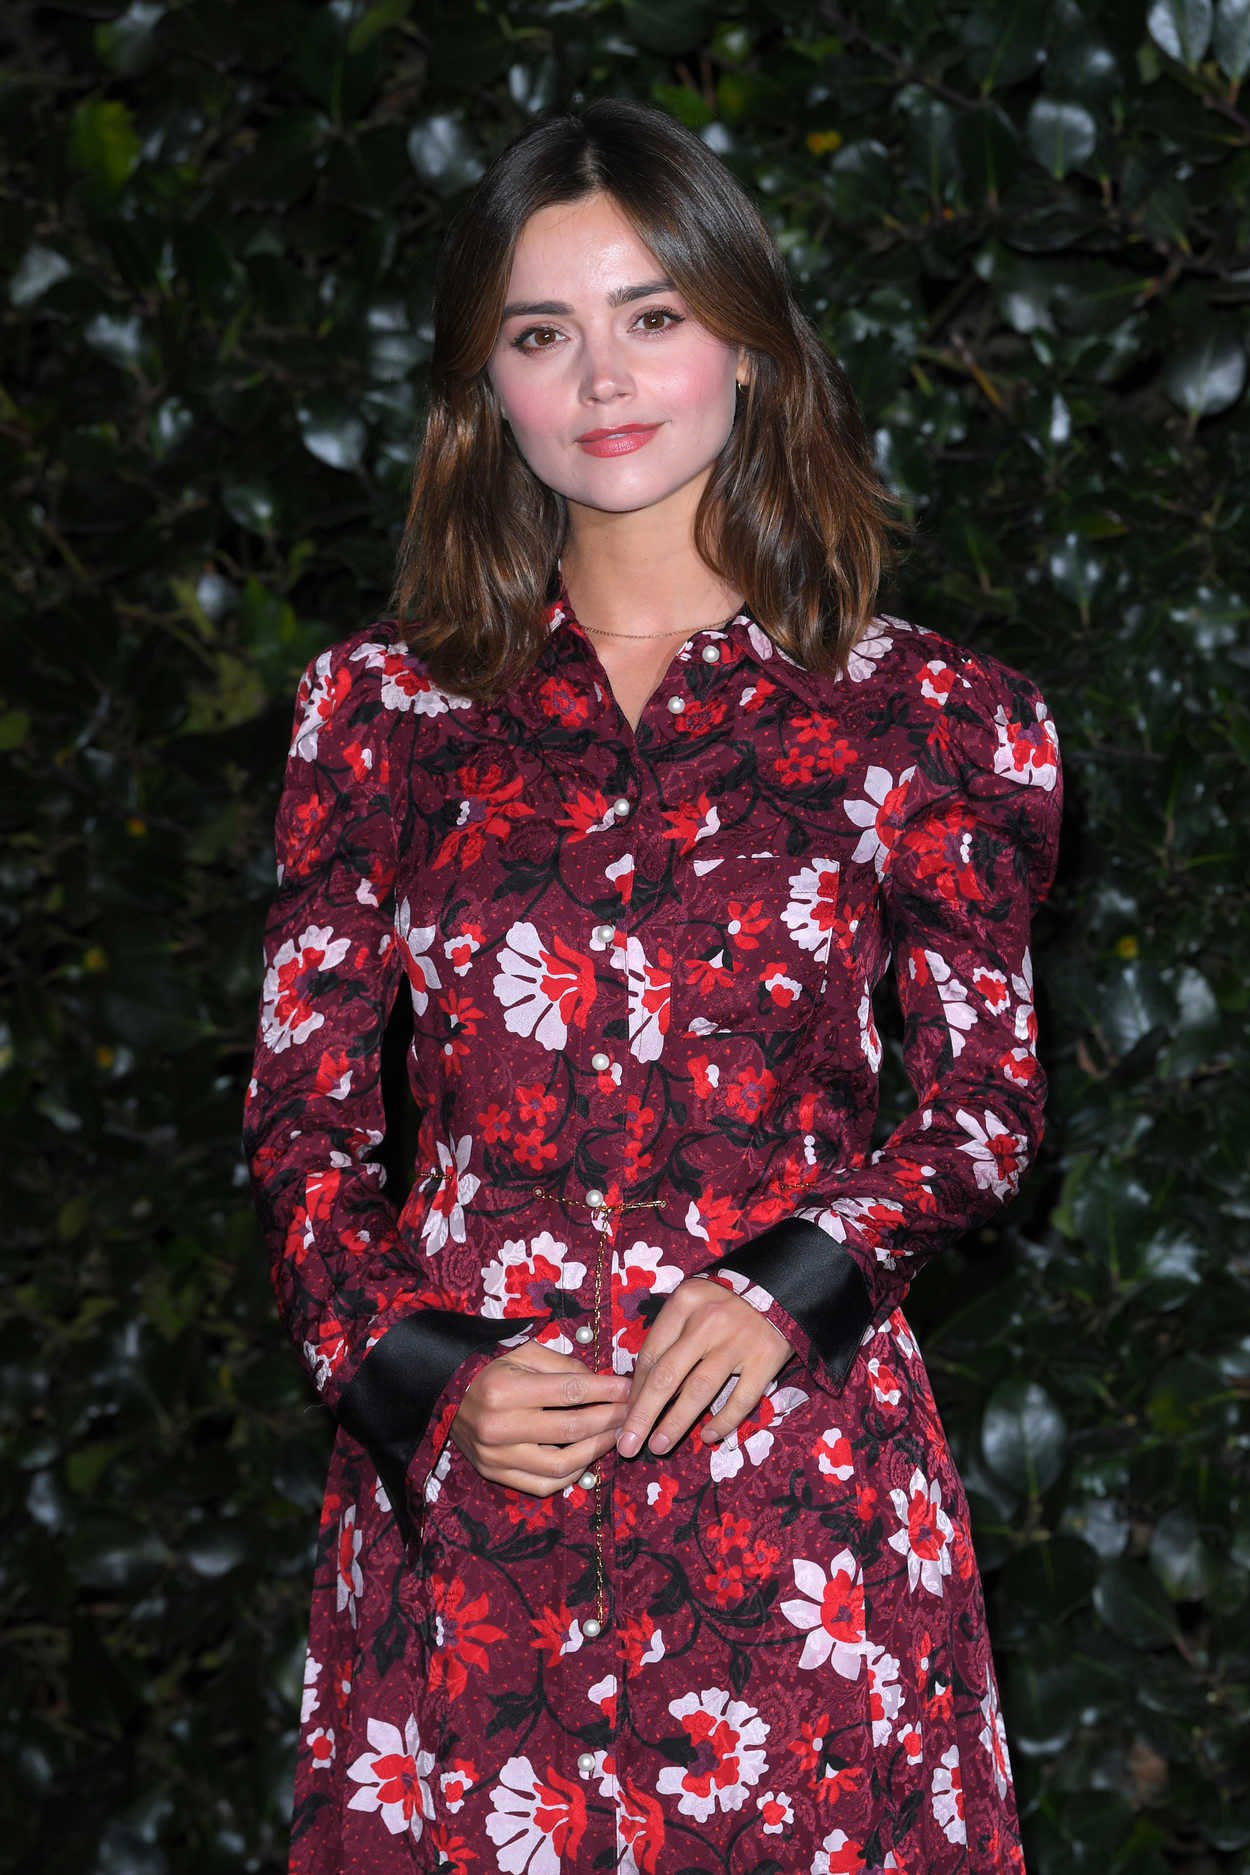 Jenna-Louise Coleman at the Victoria TV Show Photocall in London 10/09/2017-3